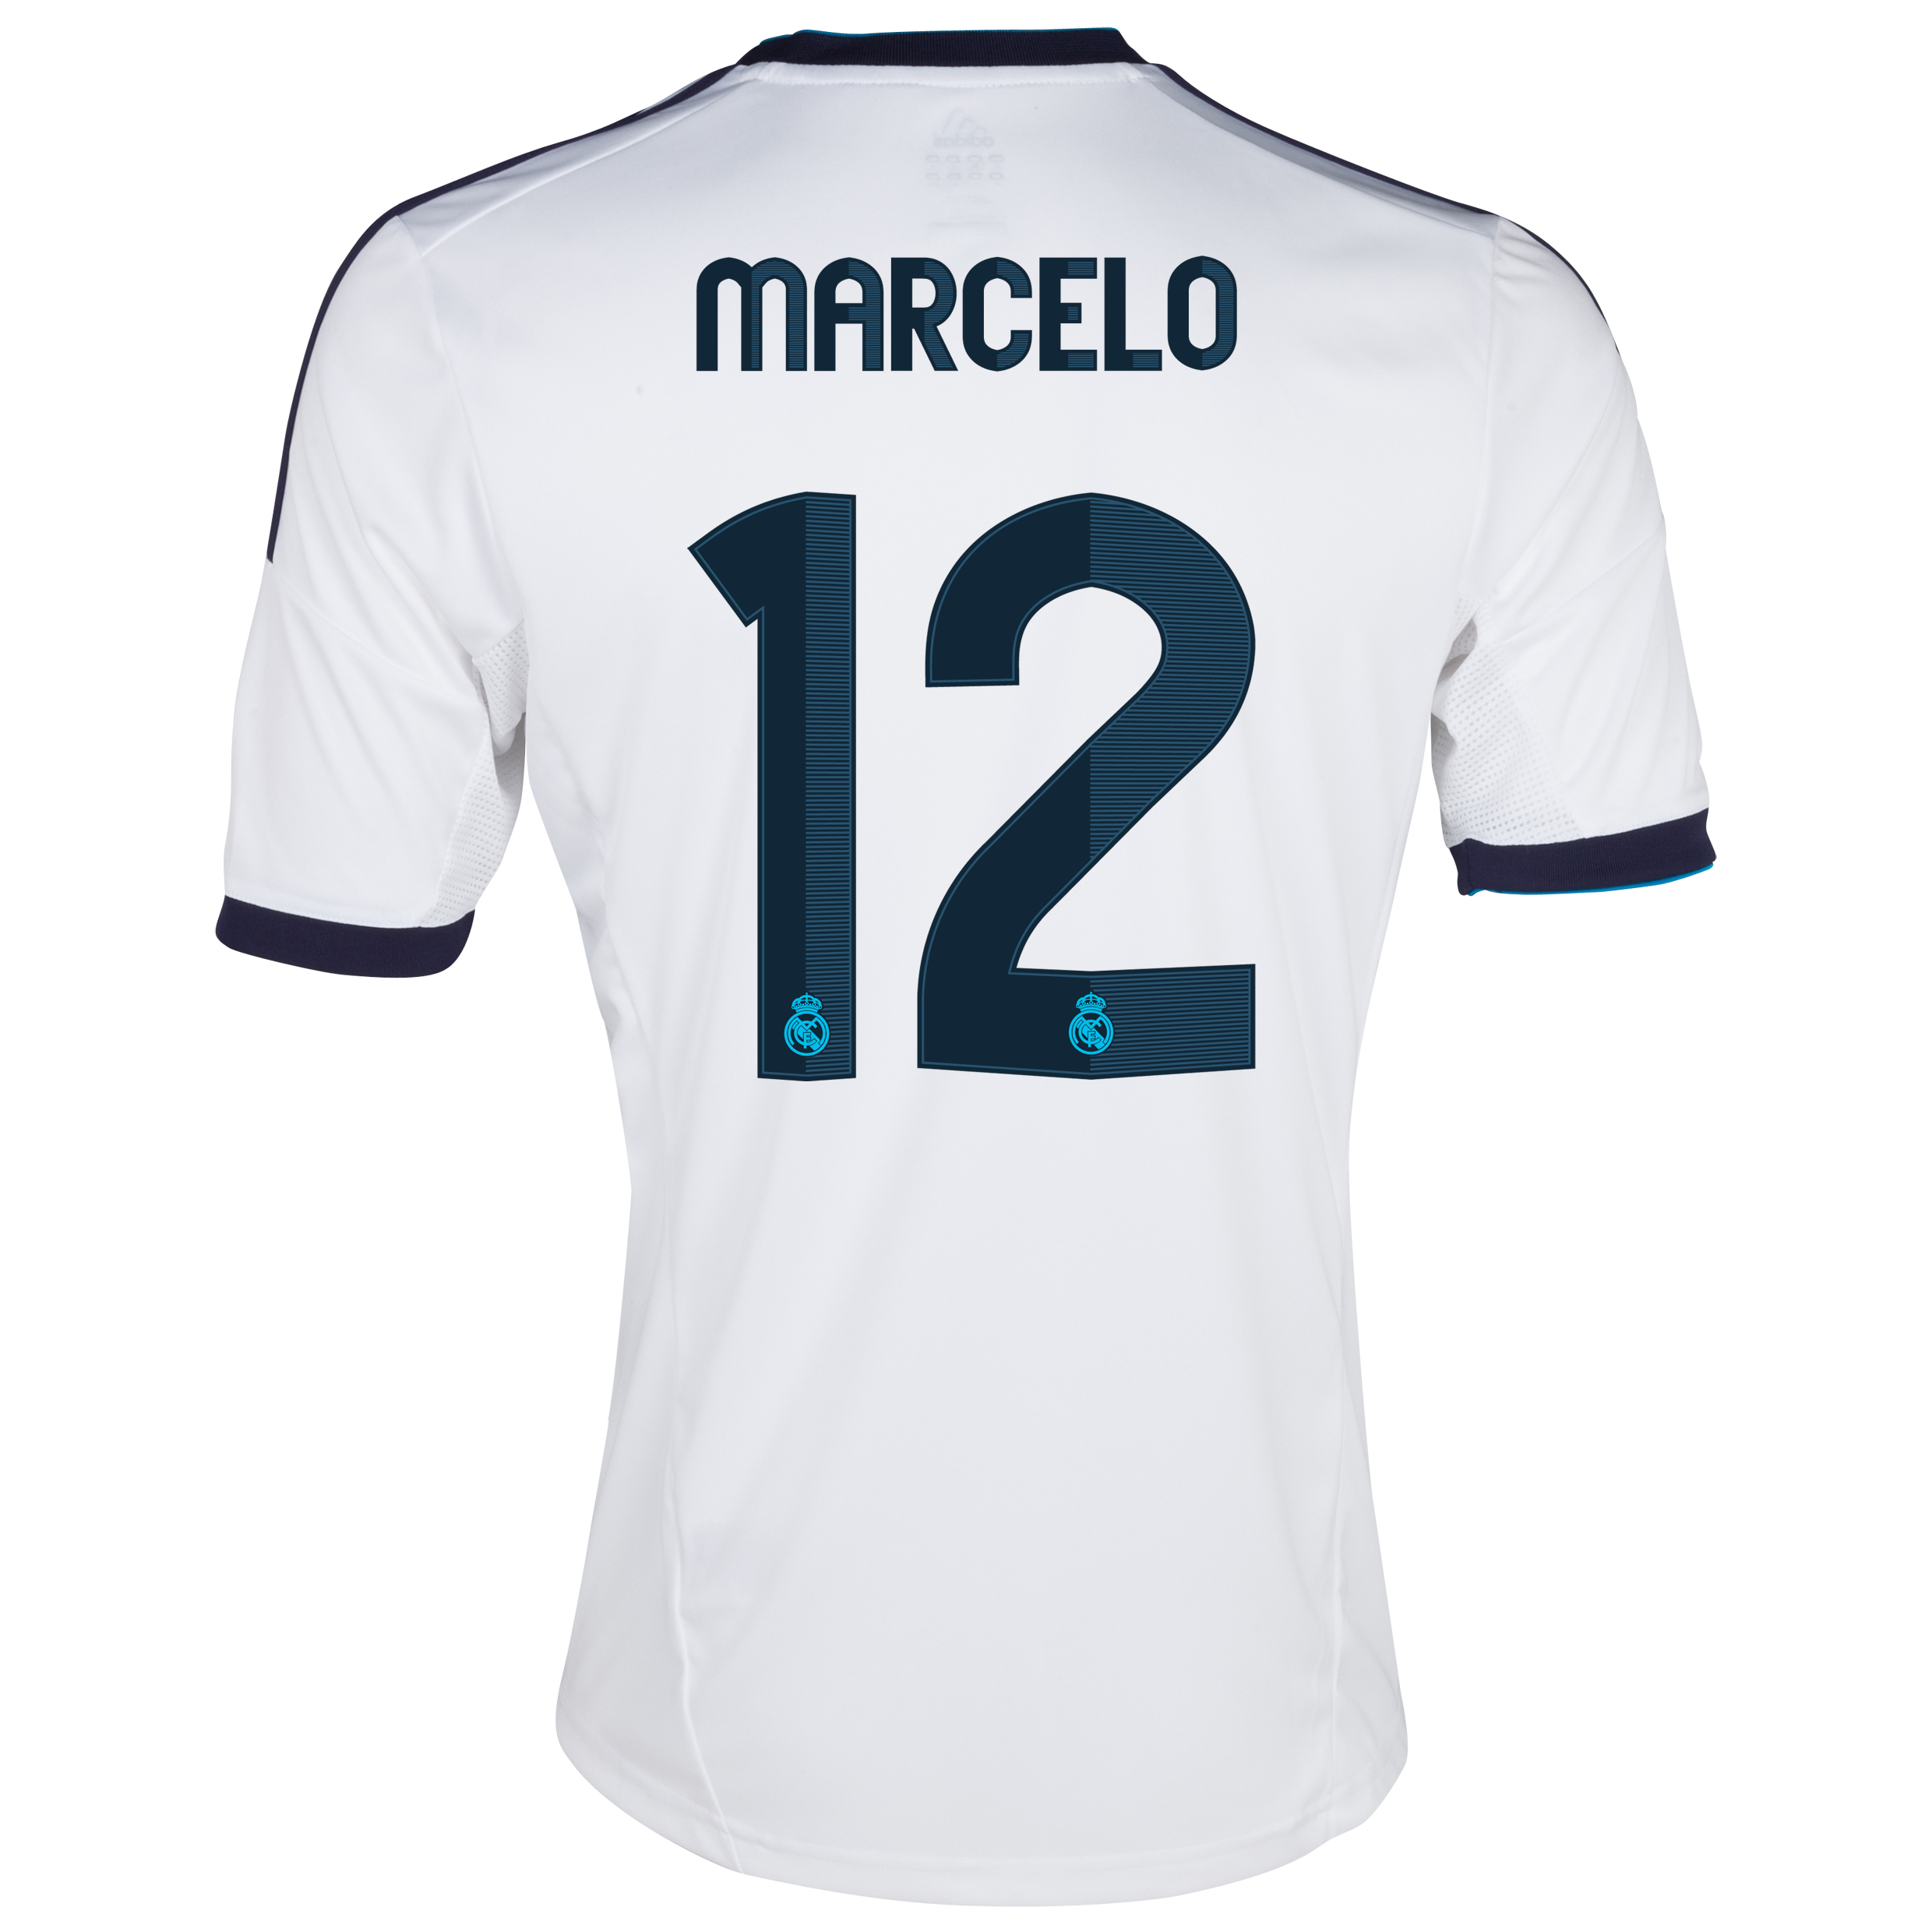 Real Madrid Home Shirt 2012/13 - Youths with Marcelo 12 printing